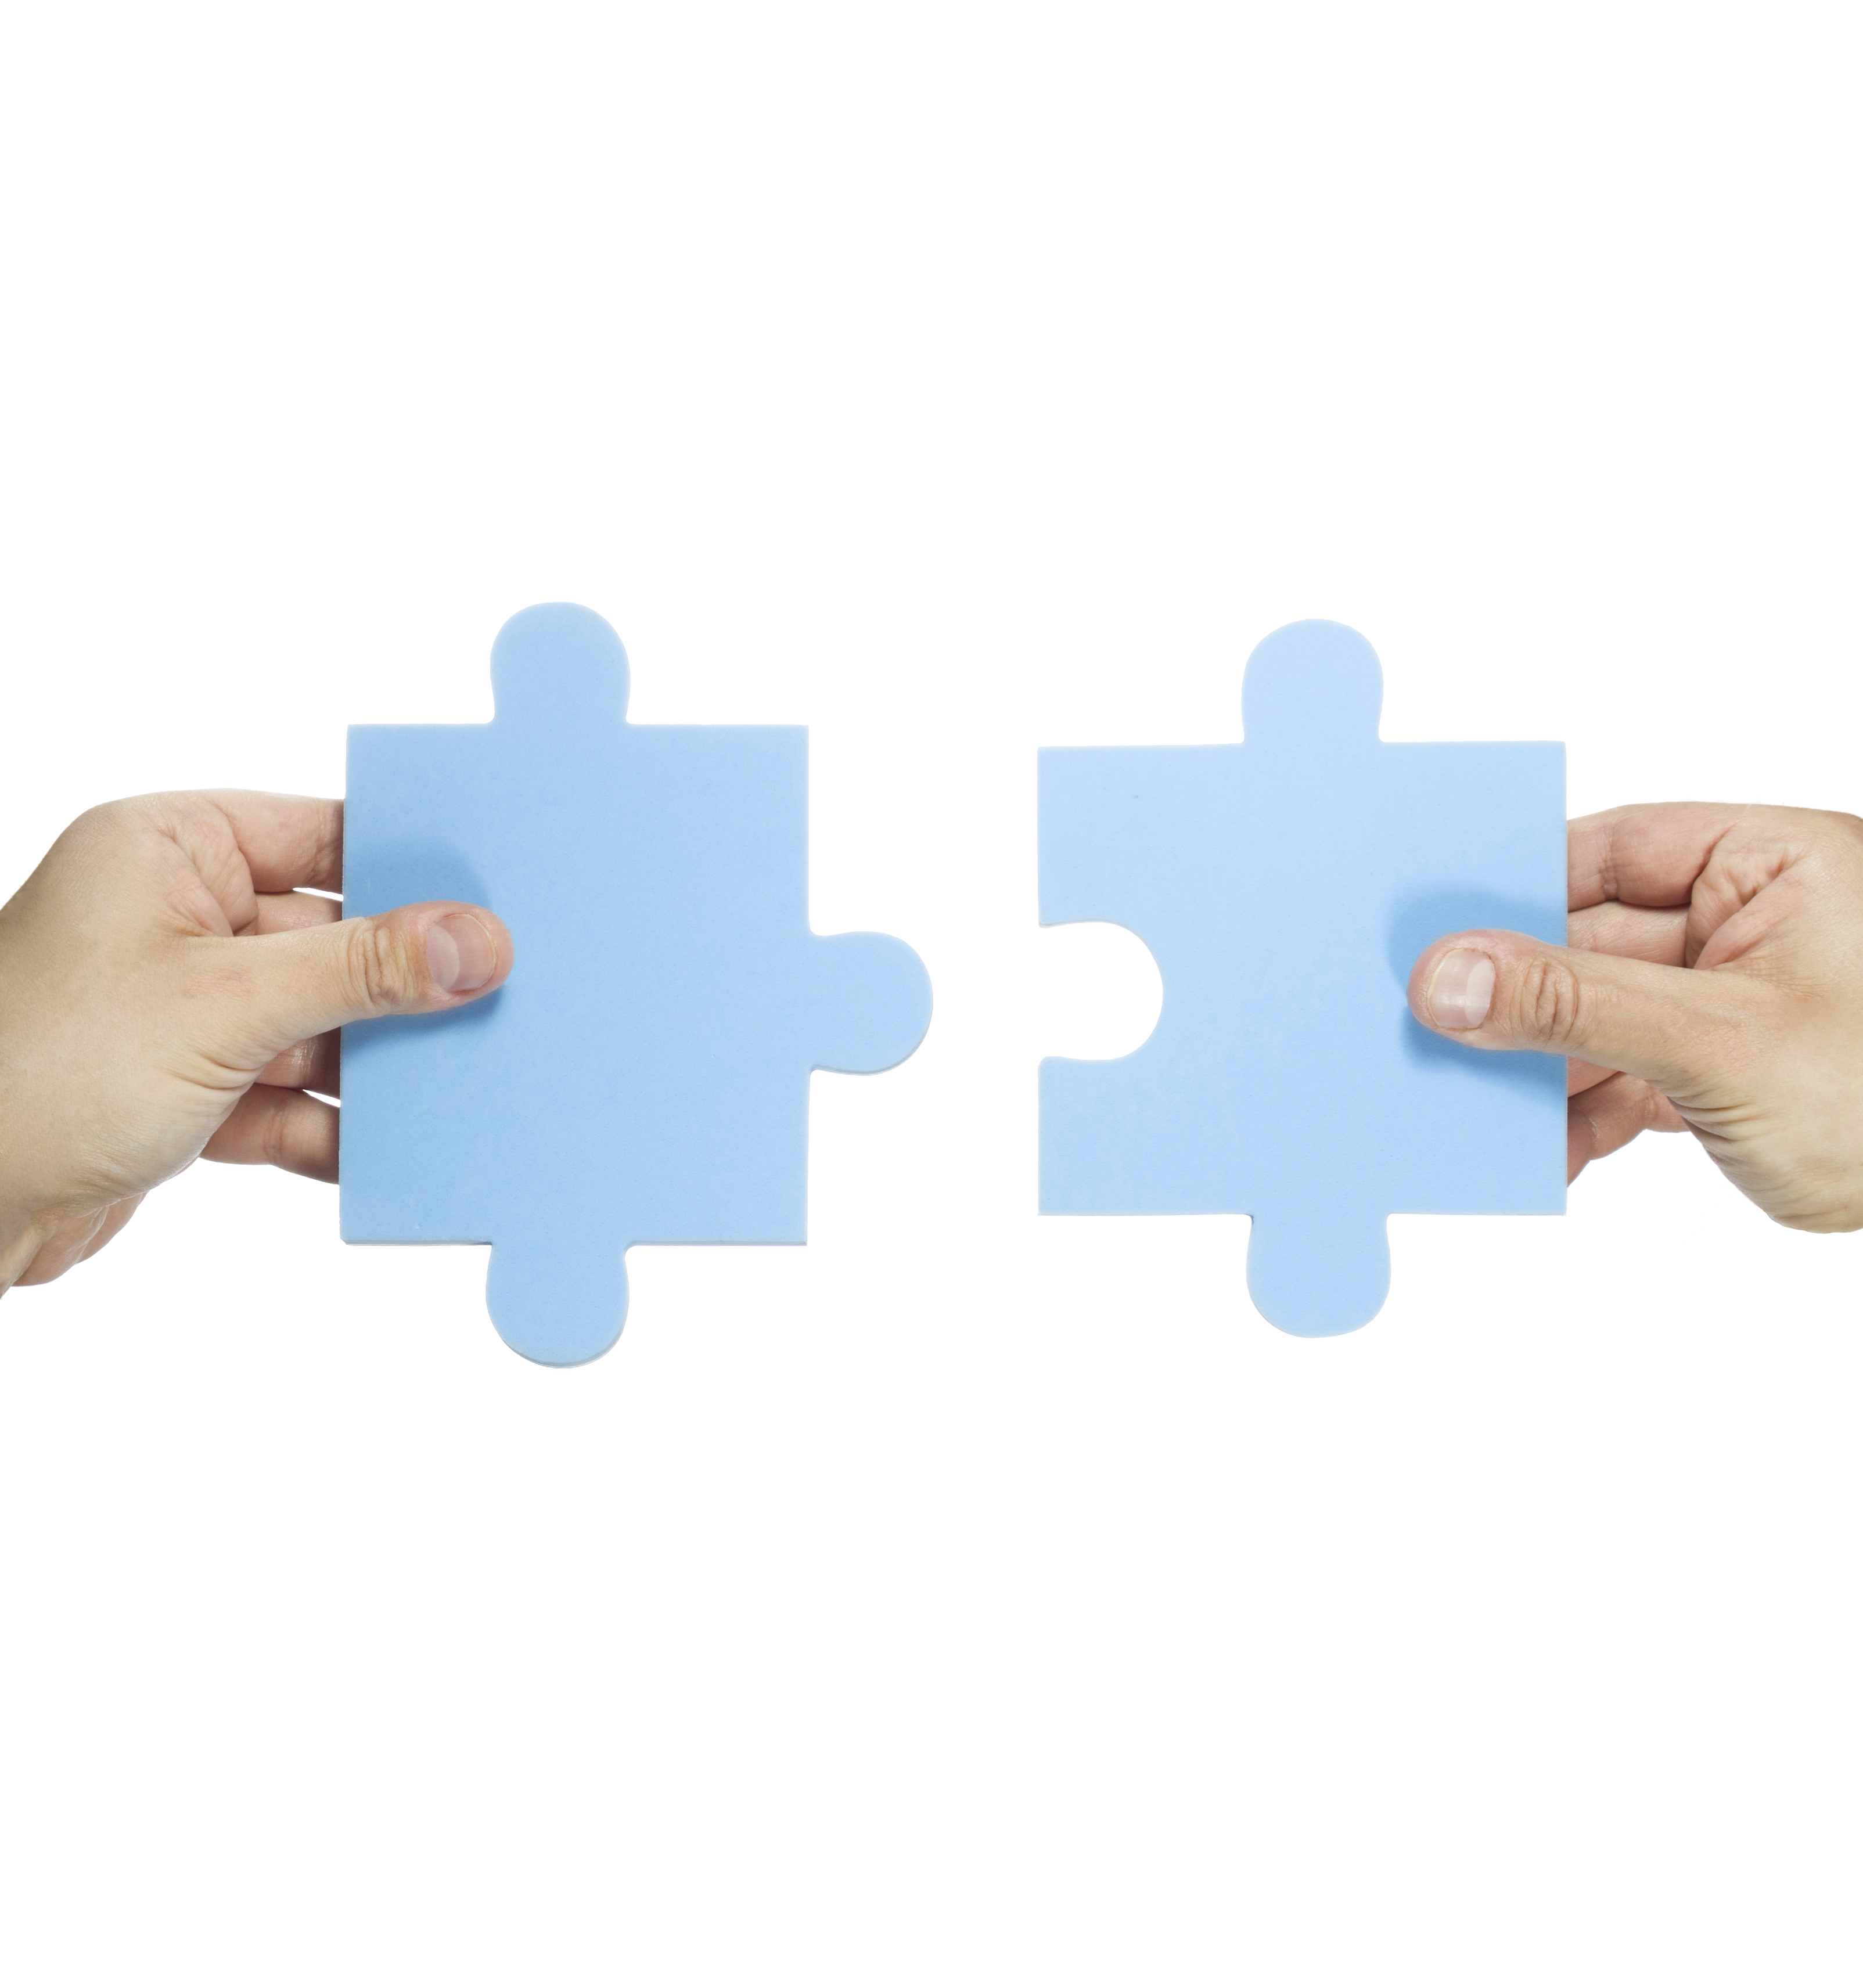 Retail Partnerships What You Need To Know When Partnering With